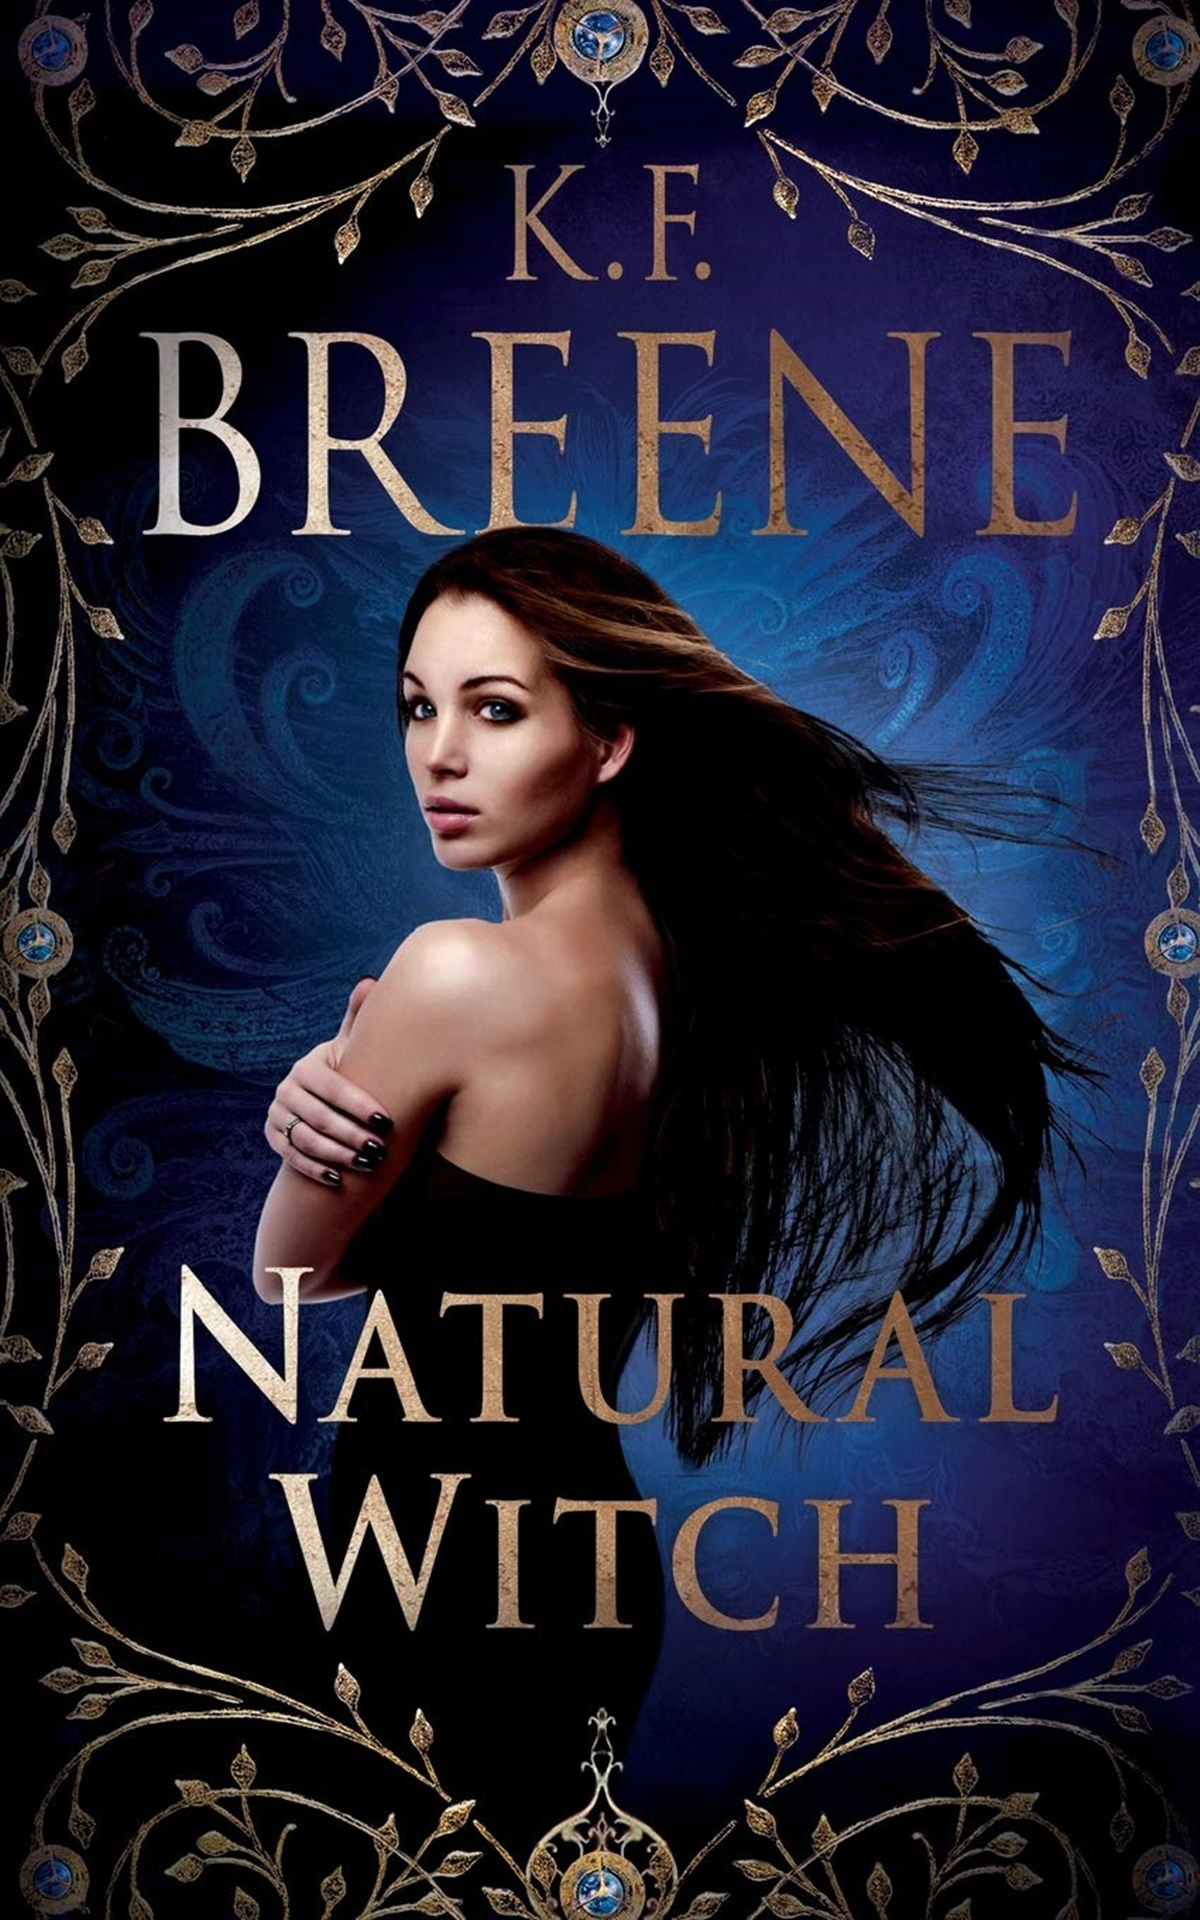 Paranormal Romance Novels, cover of Natural Witch by K.F. Breene, books